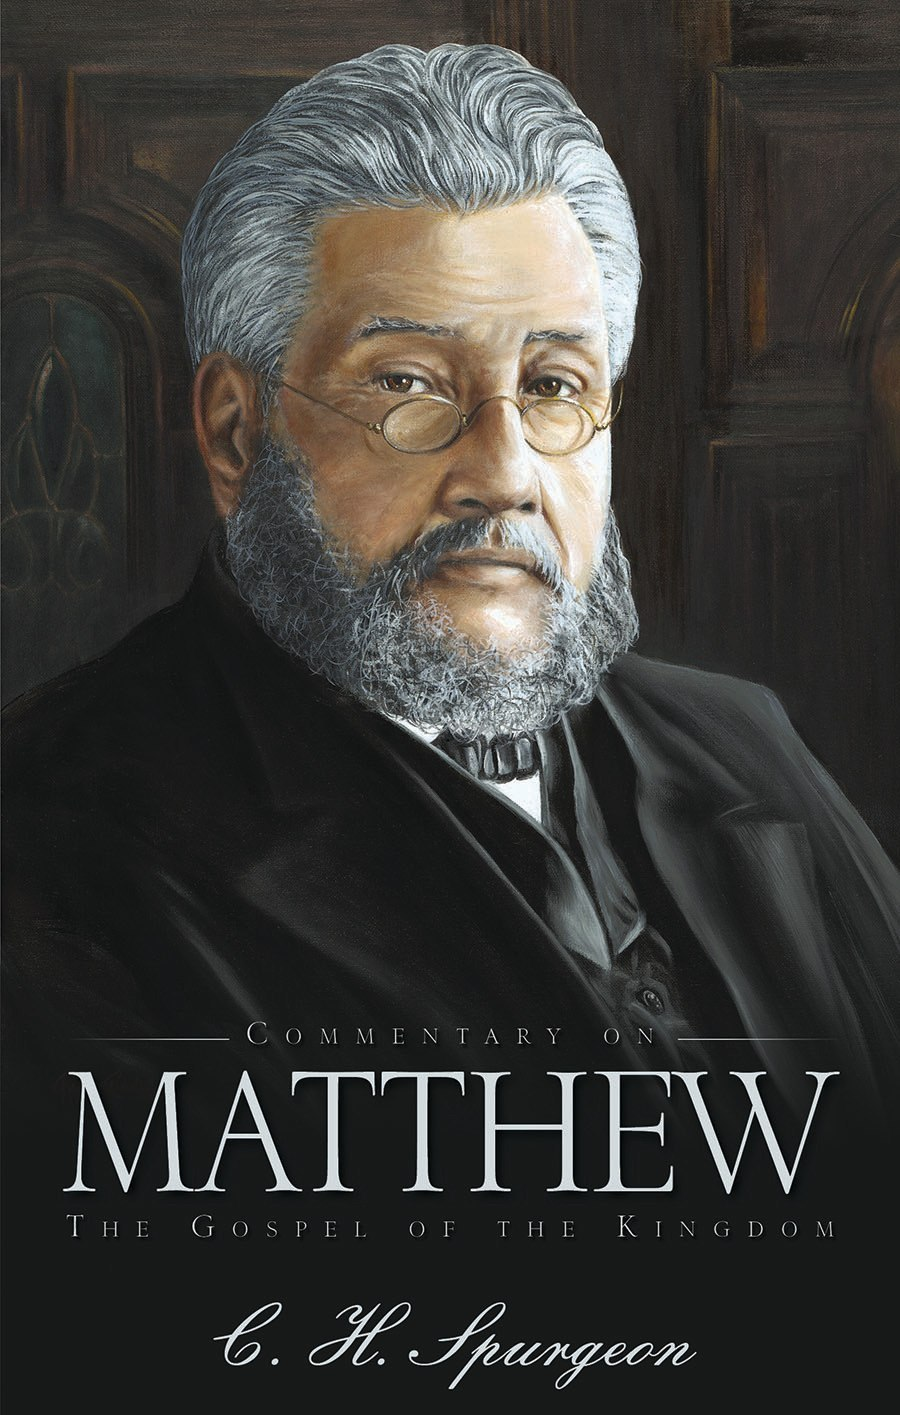 Book Cover For 'Commentary on Matthew'